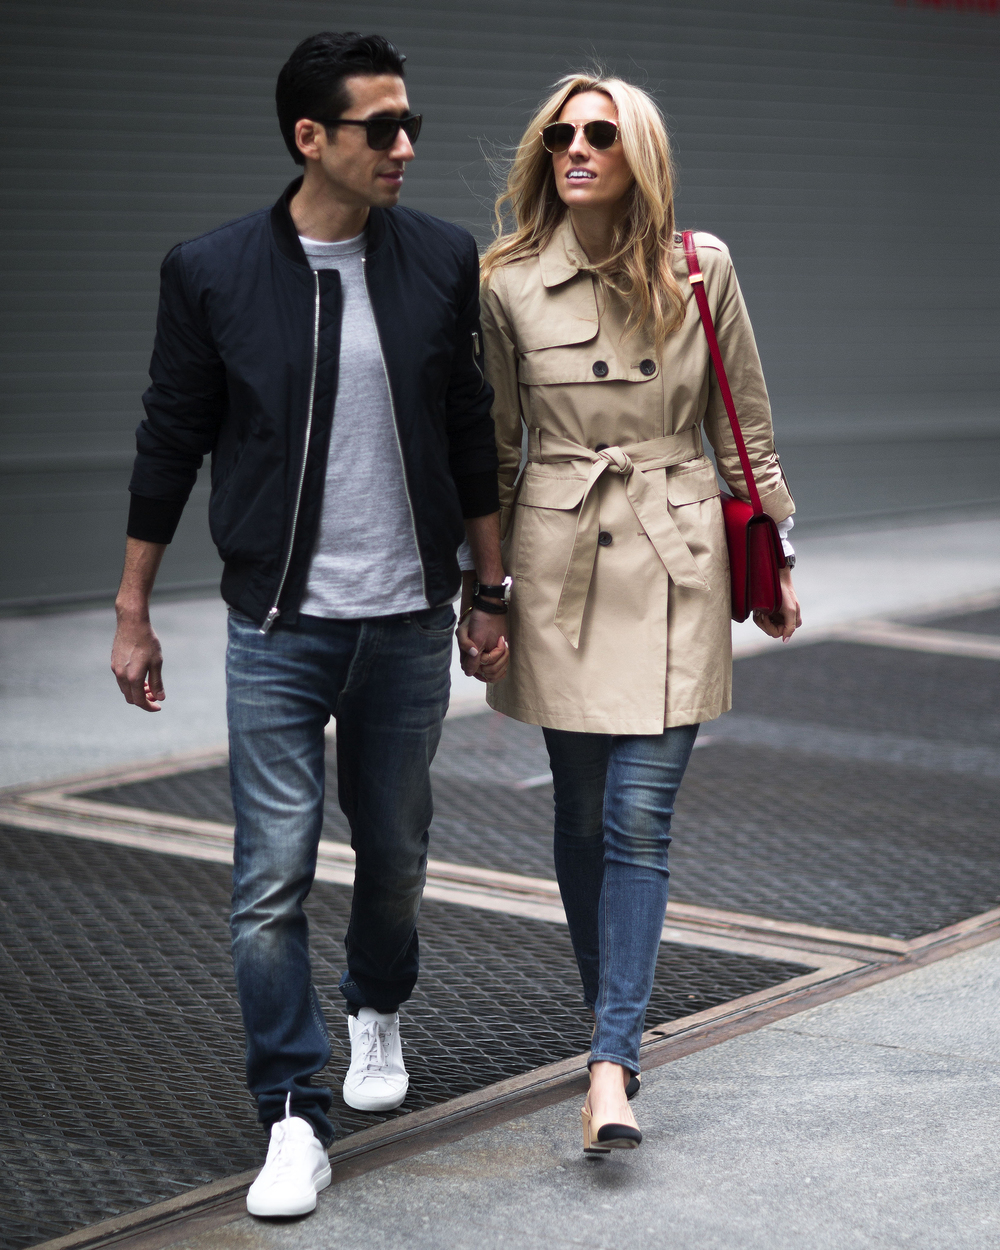 Cahue wears the  Vince Camuto Double Breasted Trench Coat . Adrien wears the  Vince Camuto Quilted Interior Bomber Jacket .